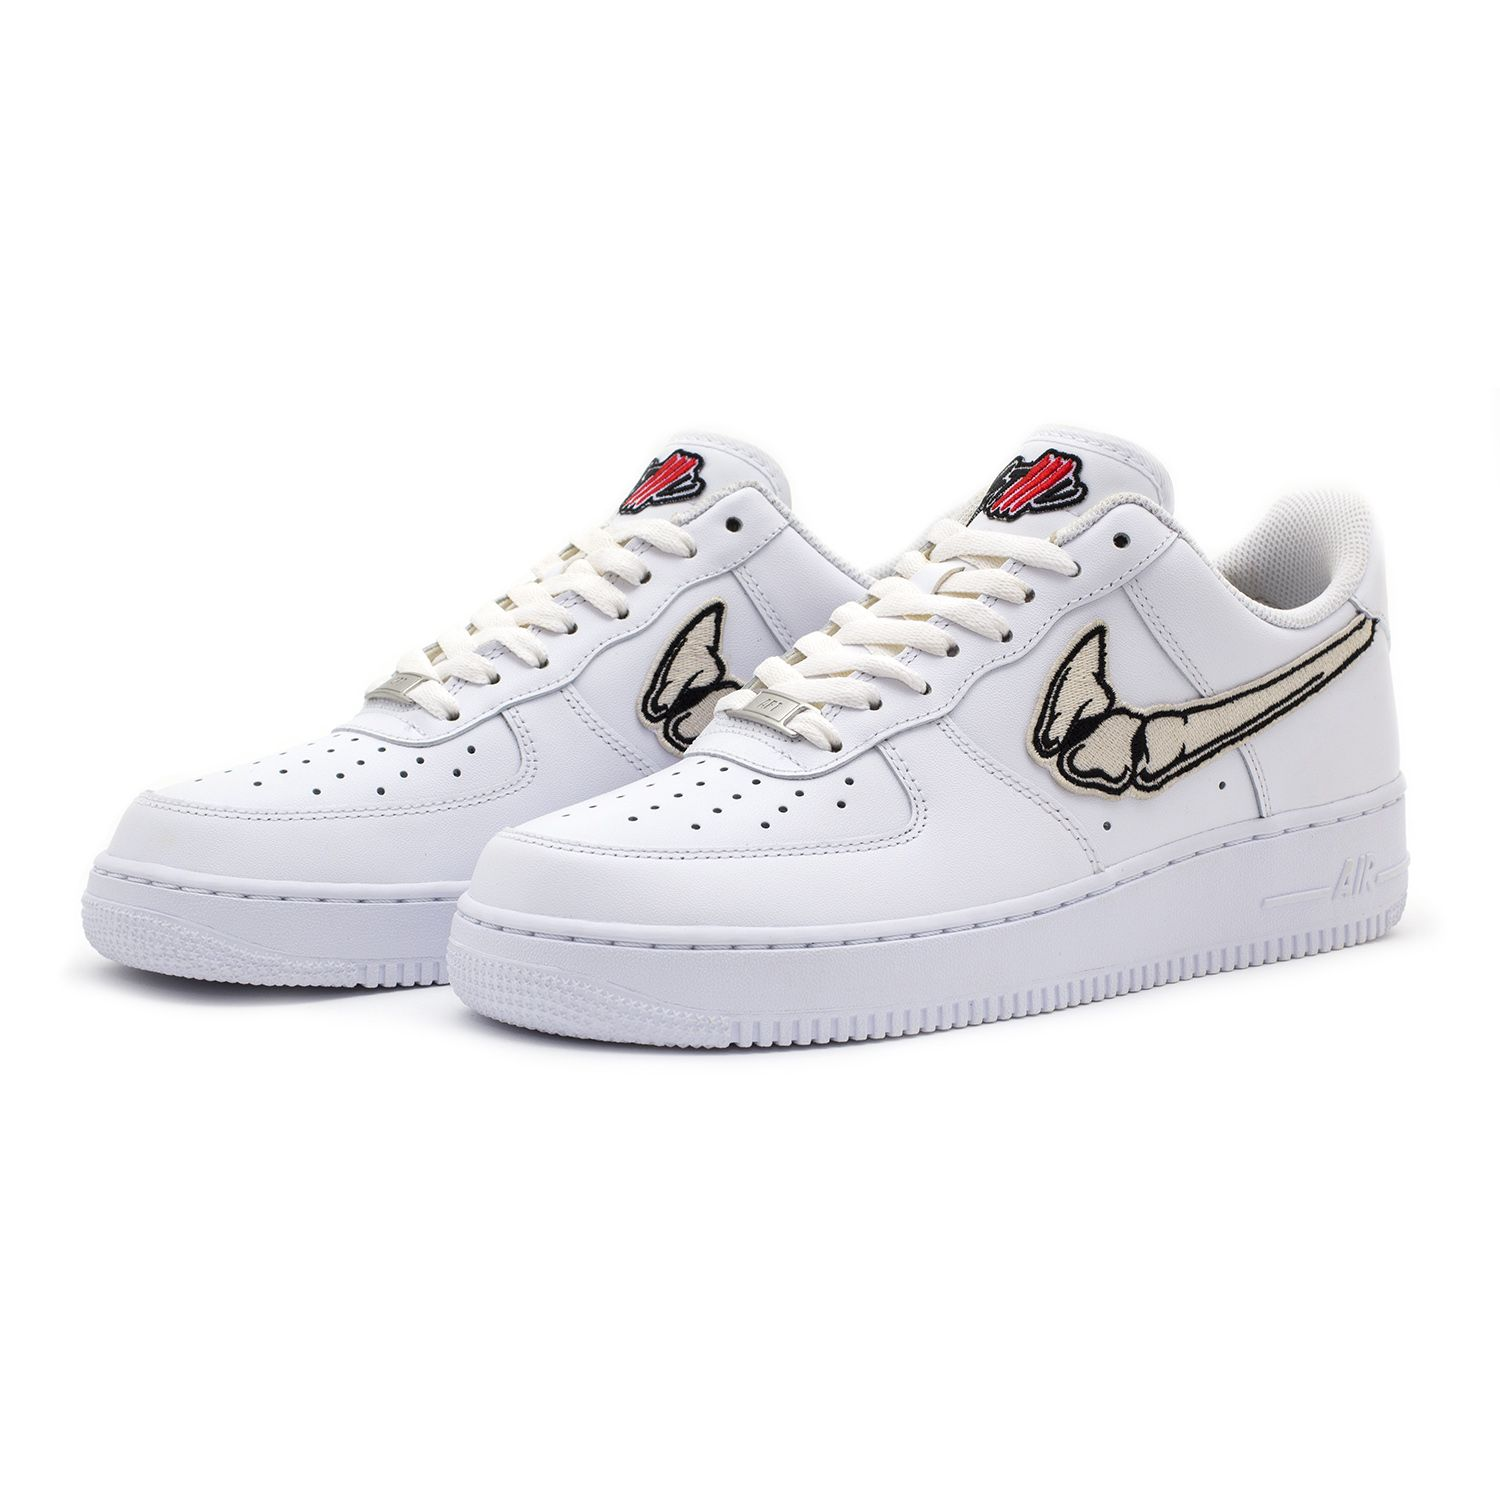 17f5815f864 FATAL AIR FORCE 1 Bone   White Low Custom Sneakers – STILLALIVE